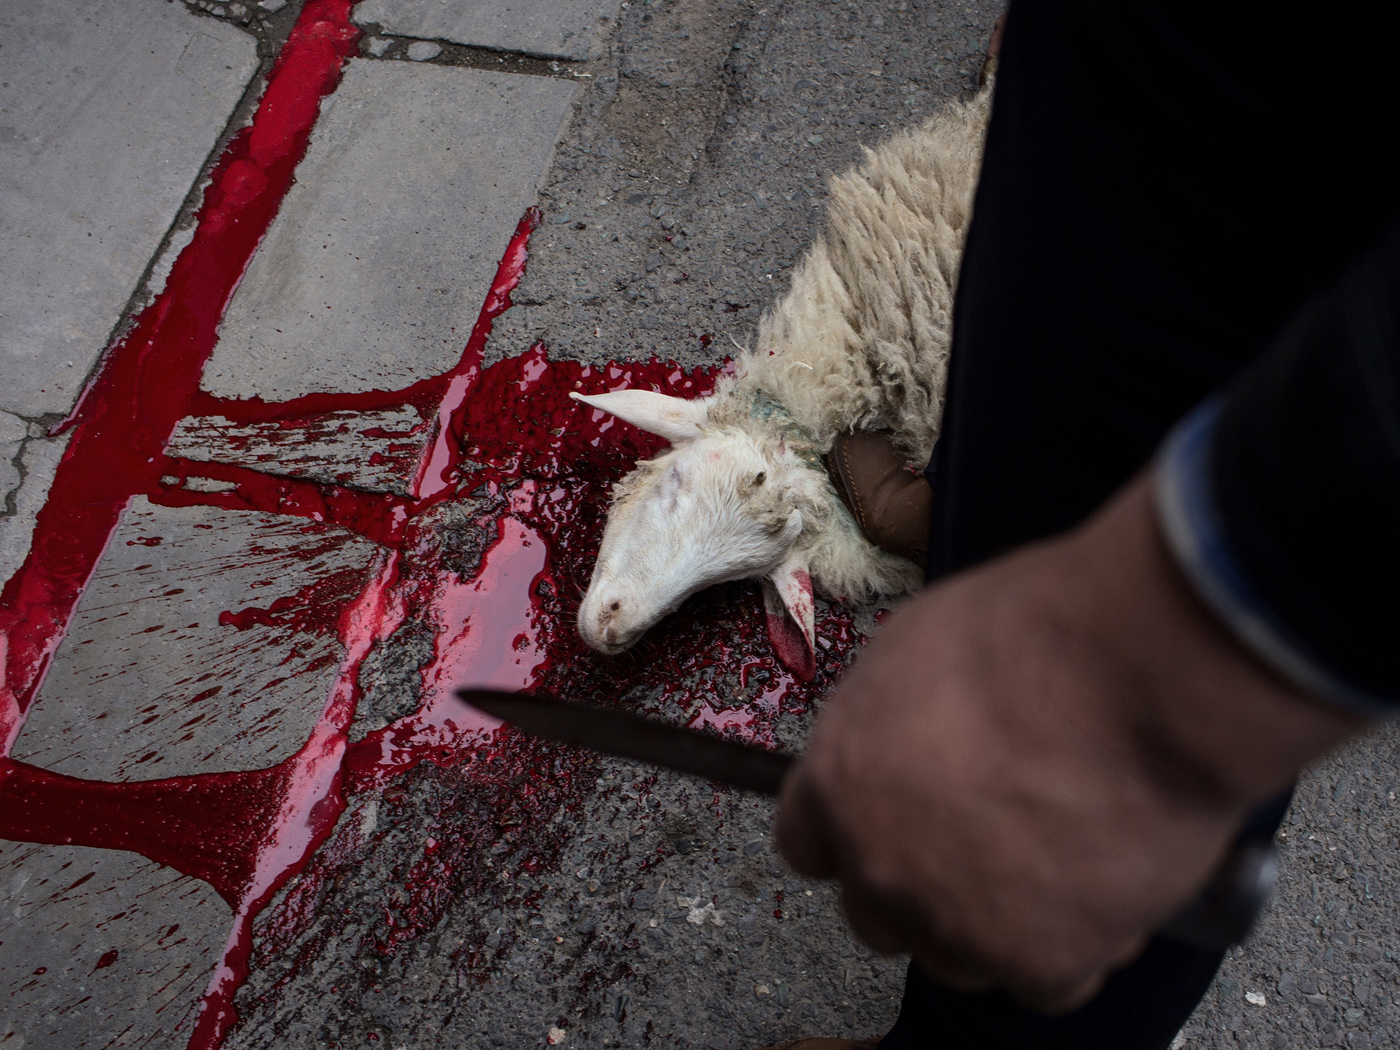 A sheep is sacrificed in honour of Alireza Akbari as his corpse is carried through the Fallah neighbourhood of Tehran on Thursday April 18th, 2019 in celebration and mourning of his martyrdom. Alireza Akbari died in Syria four years earlier serving the Fatemioun brigade, a military unit connected to the Islamic Revolutionary Guards in which Afghan citizens serve. Many of its members are refugees residing in Iran.